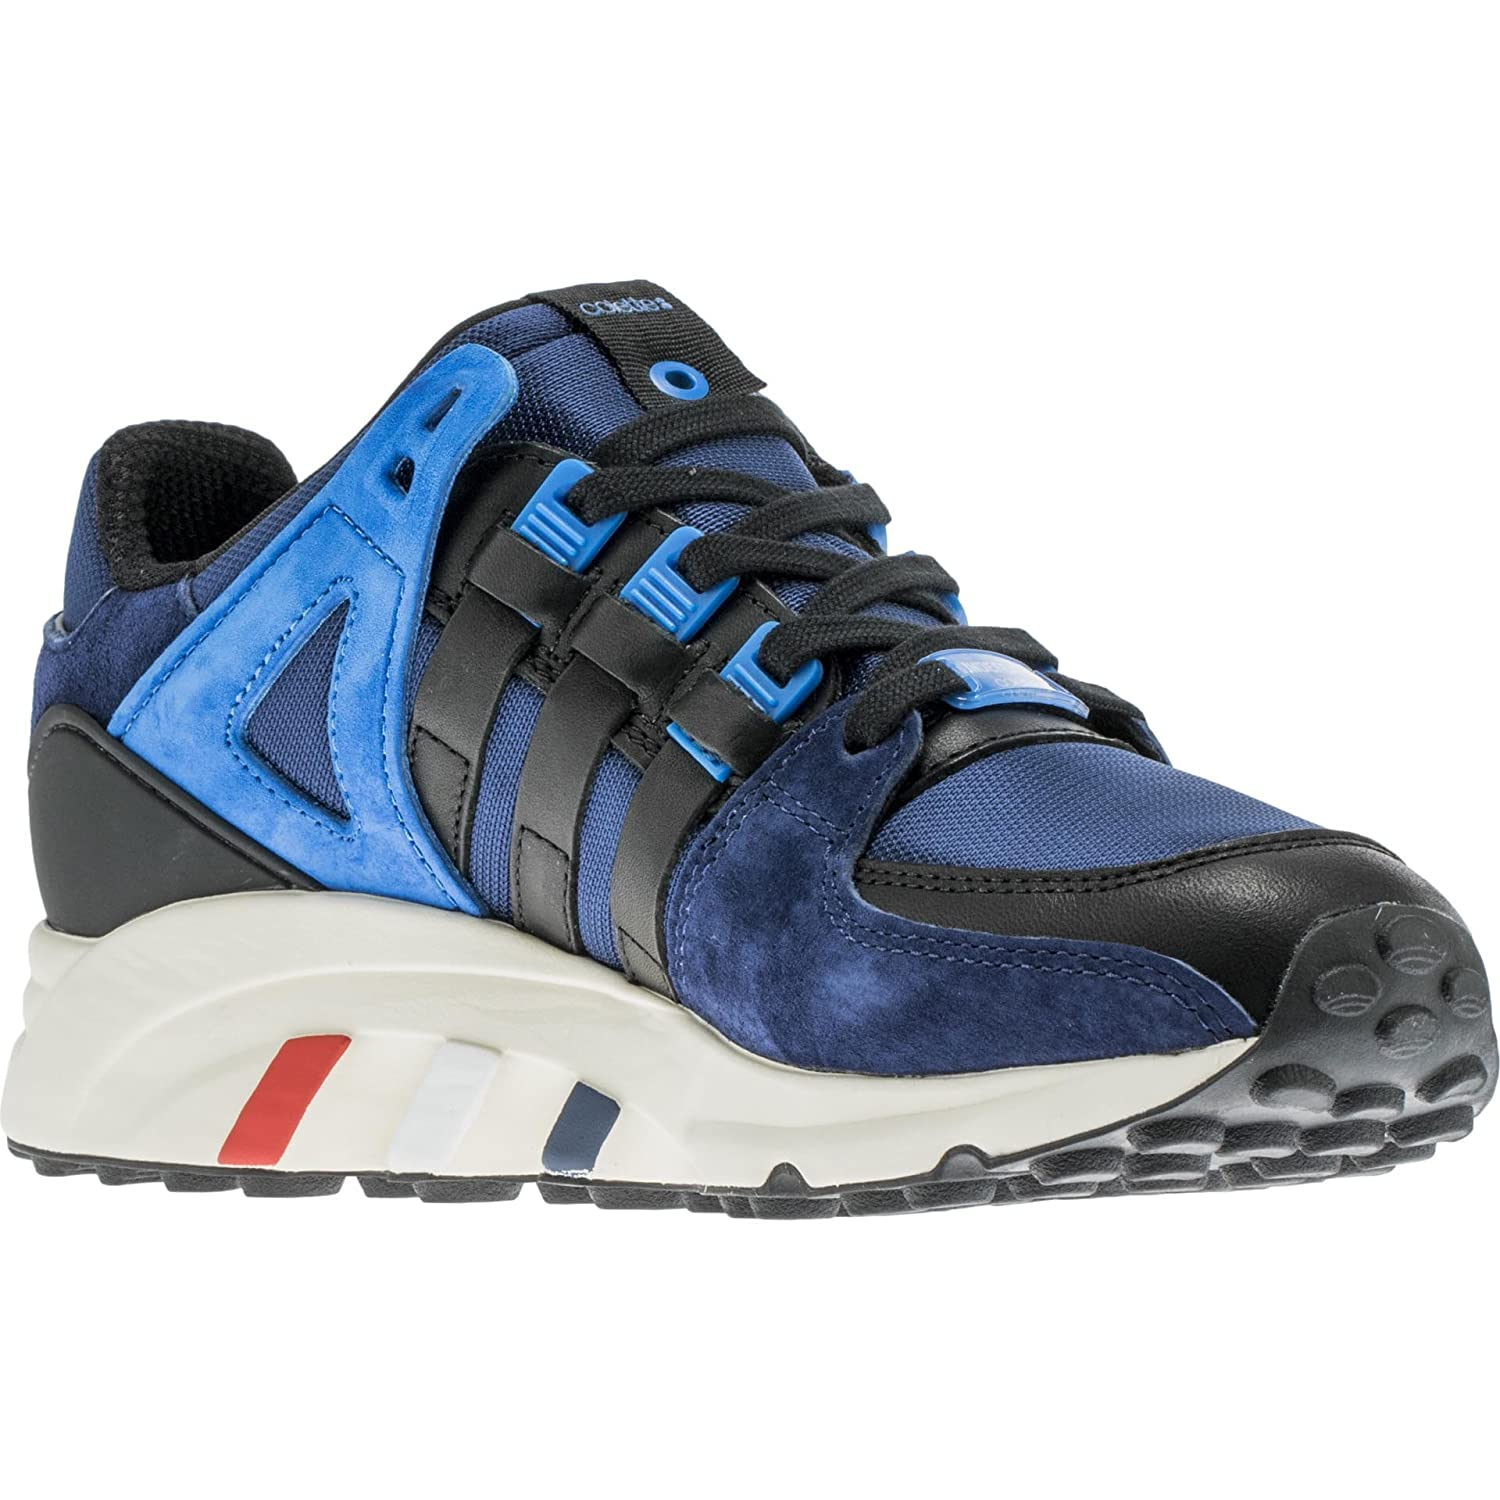 buy online 7e156 ff499 Amazon.com | adidas Men's Colette x Undefeated x EQT Support ...